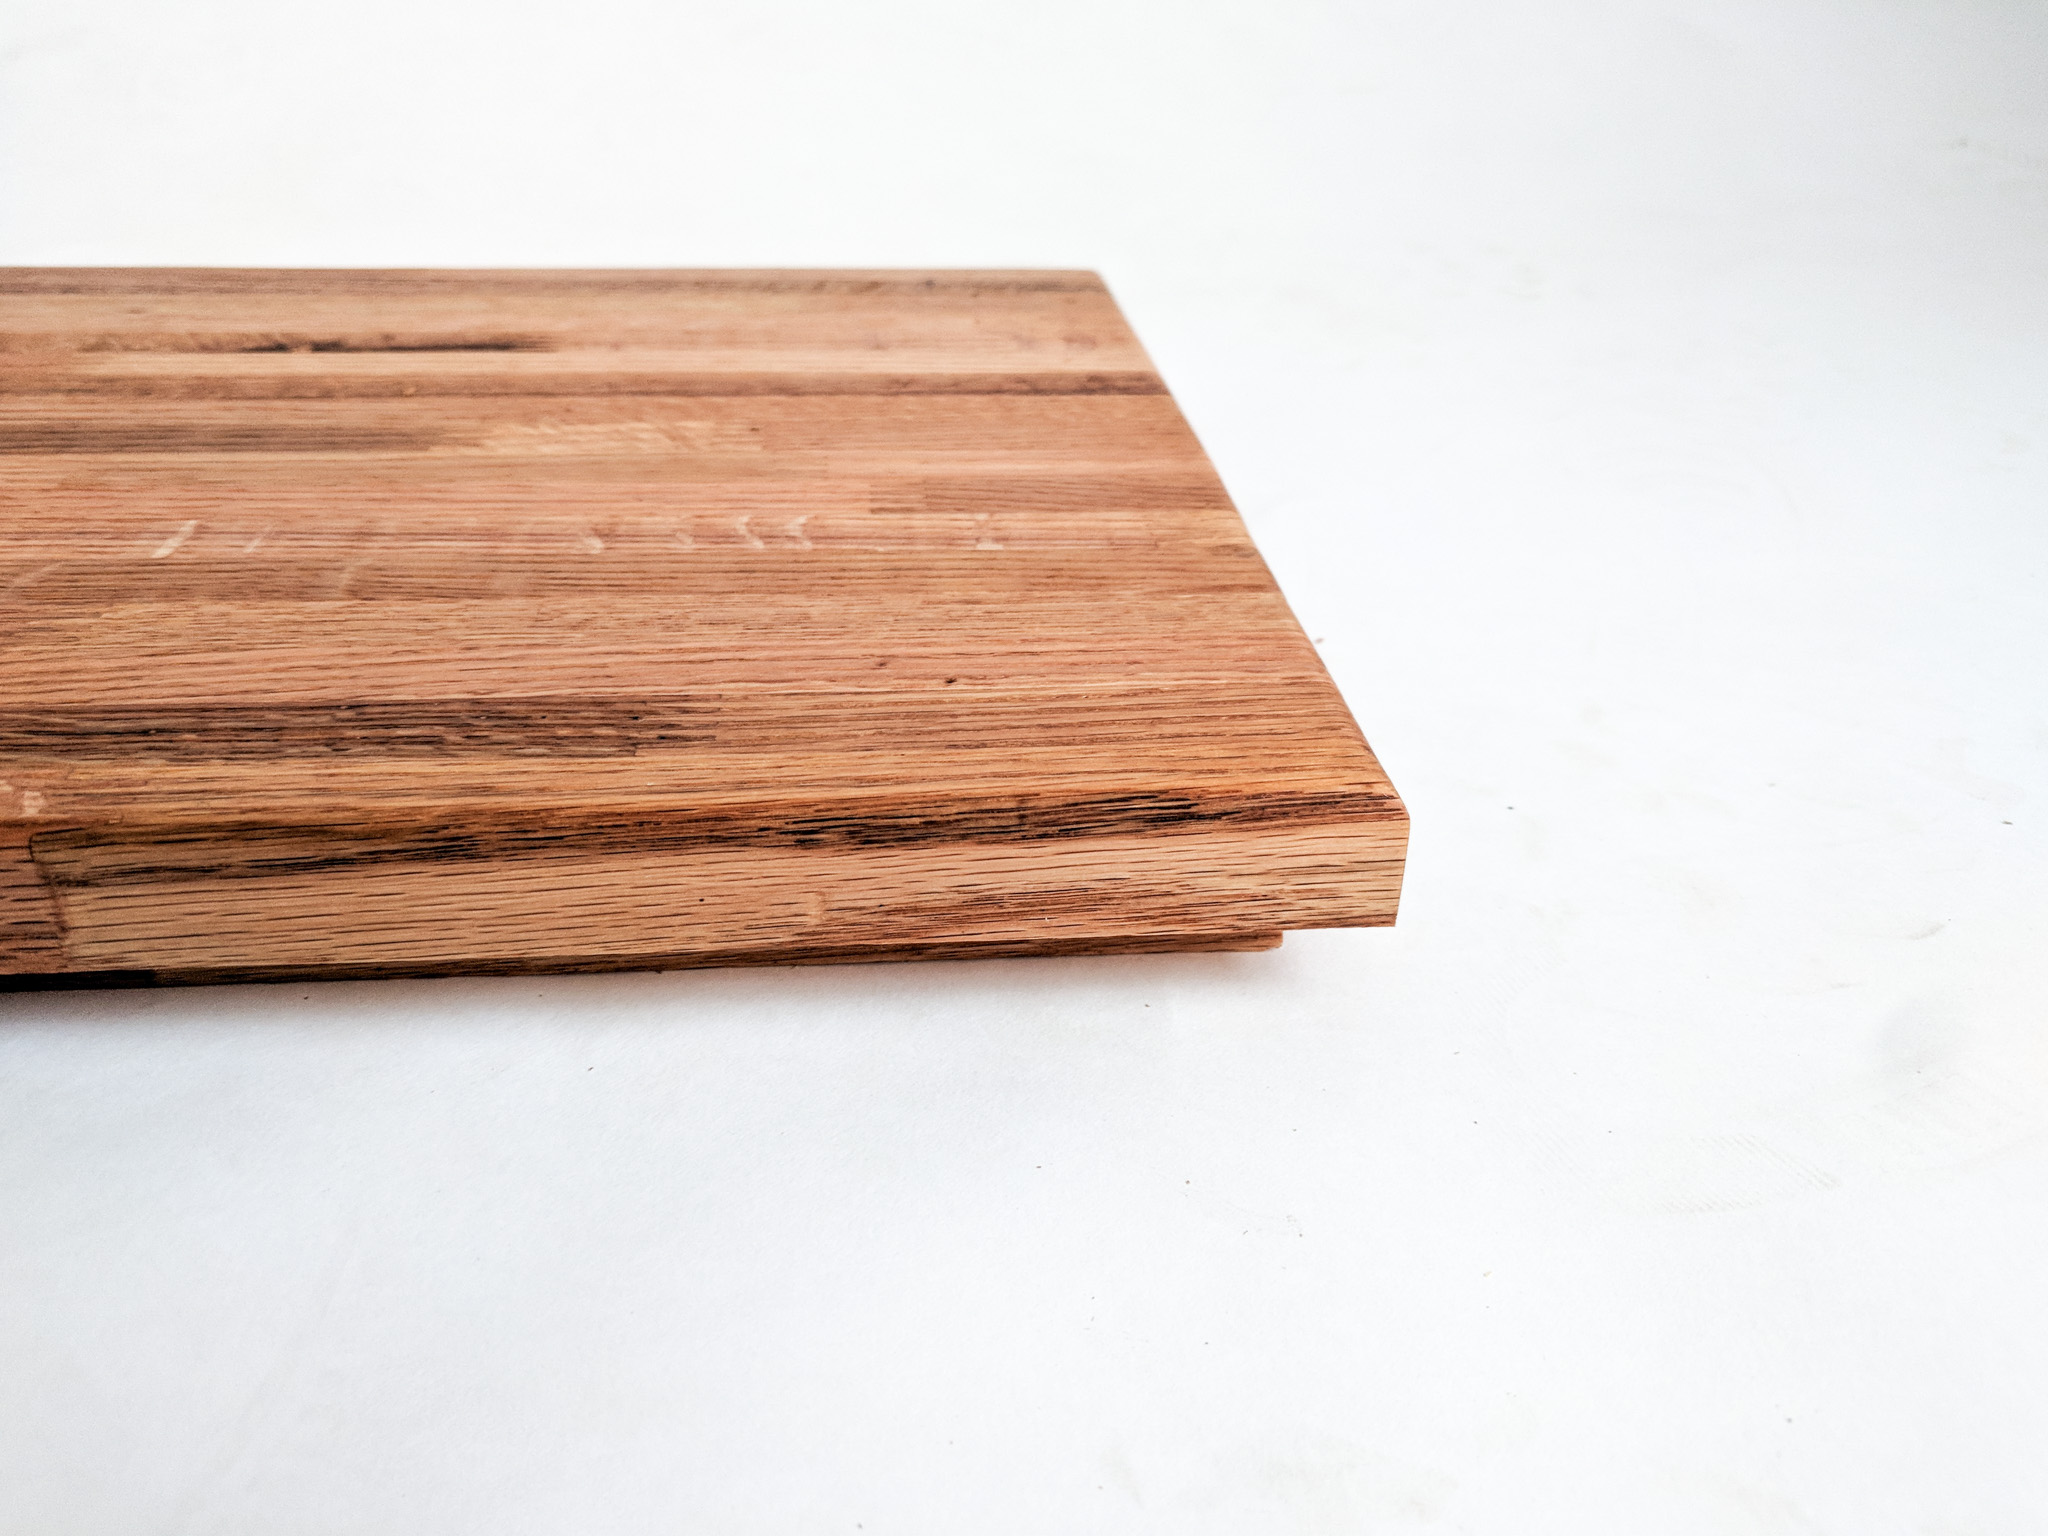 CuttingBoards-071418-19.jpg